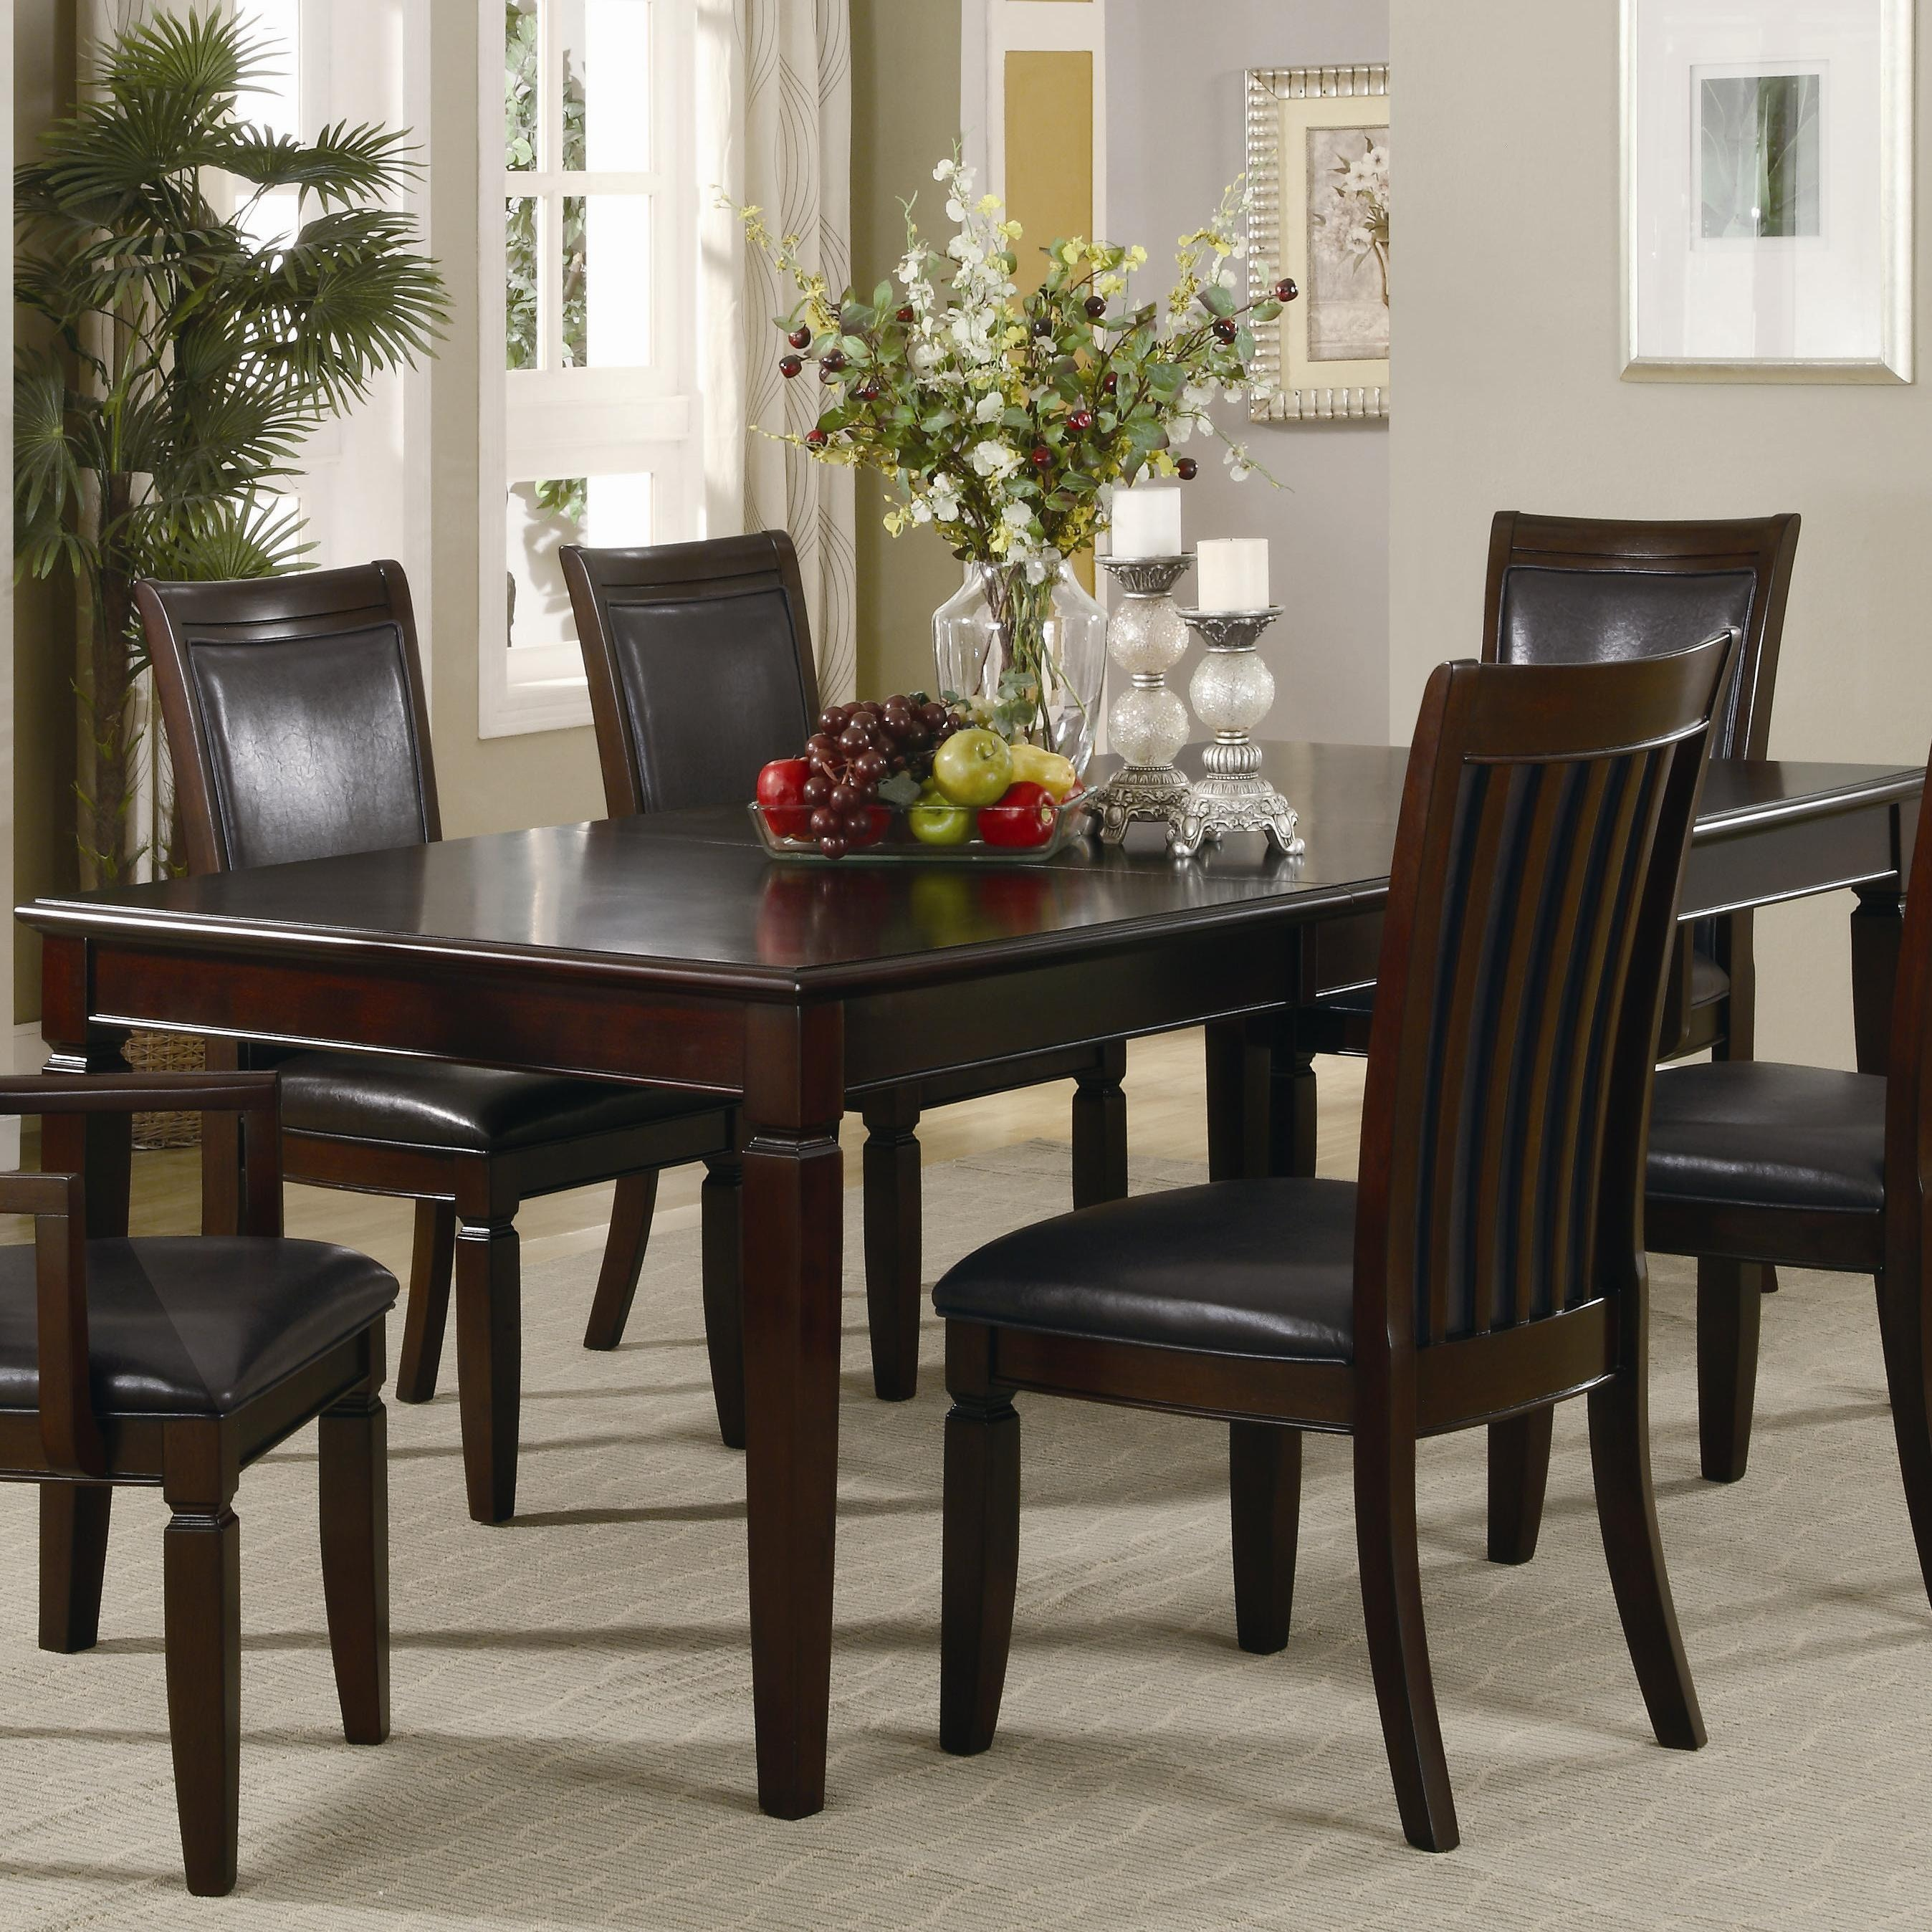 Coaster Dining Table 101631